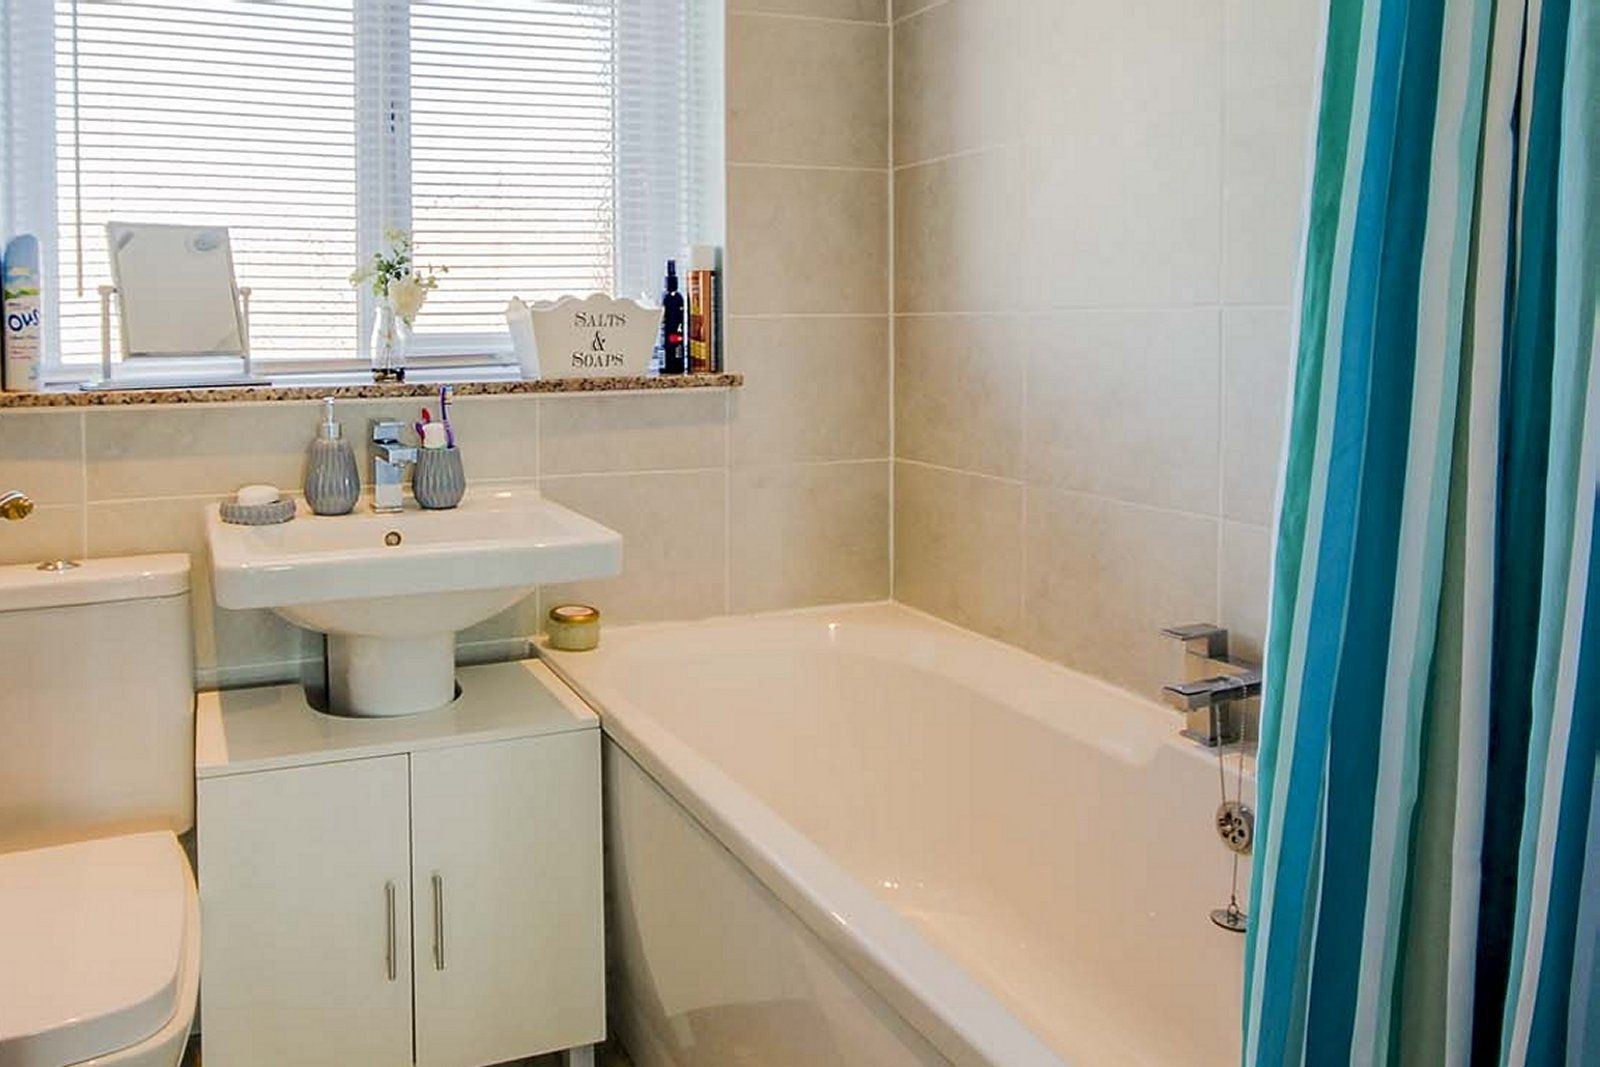 3 bed House for sale in East Preston - Bathroom (Property Image 5)